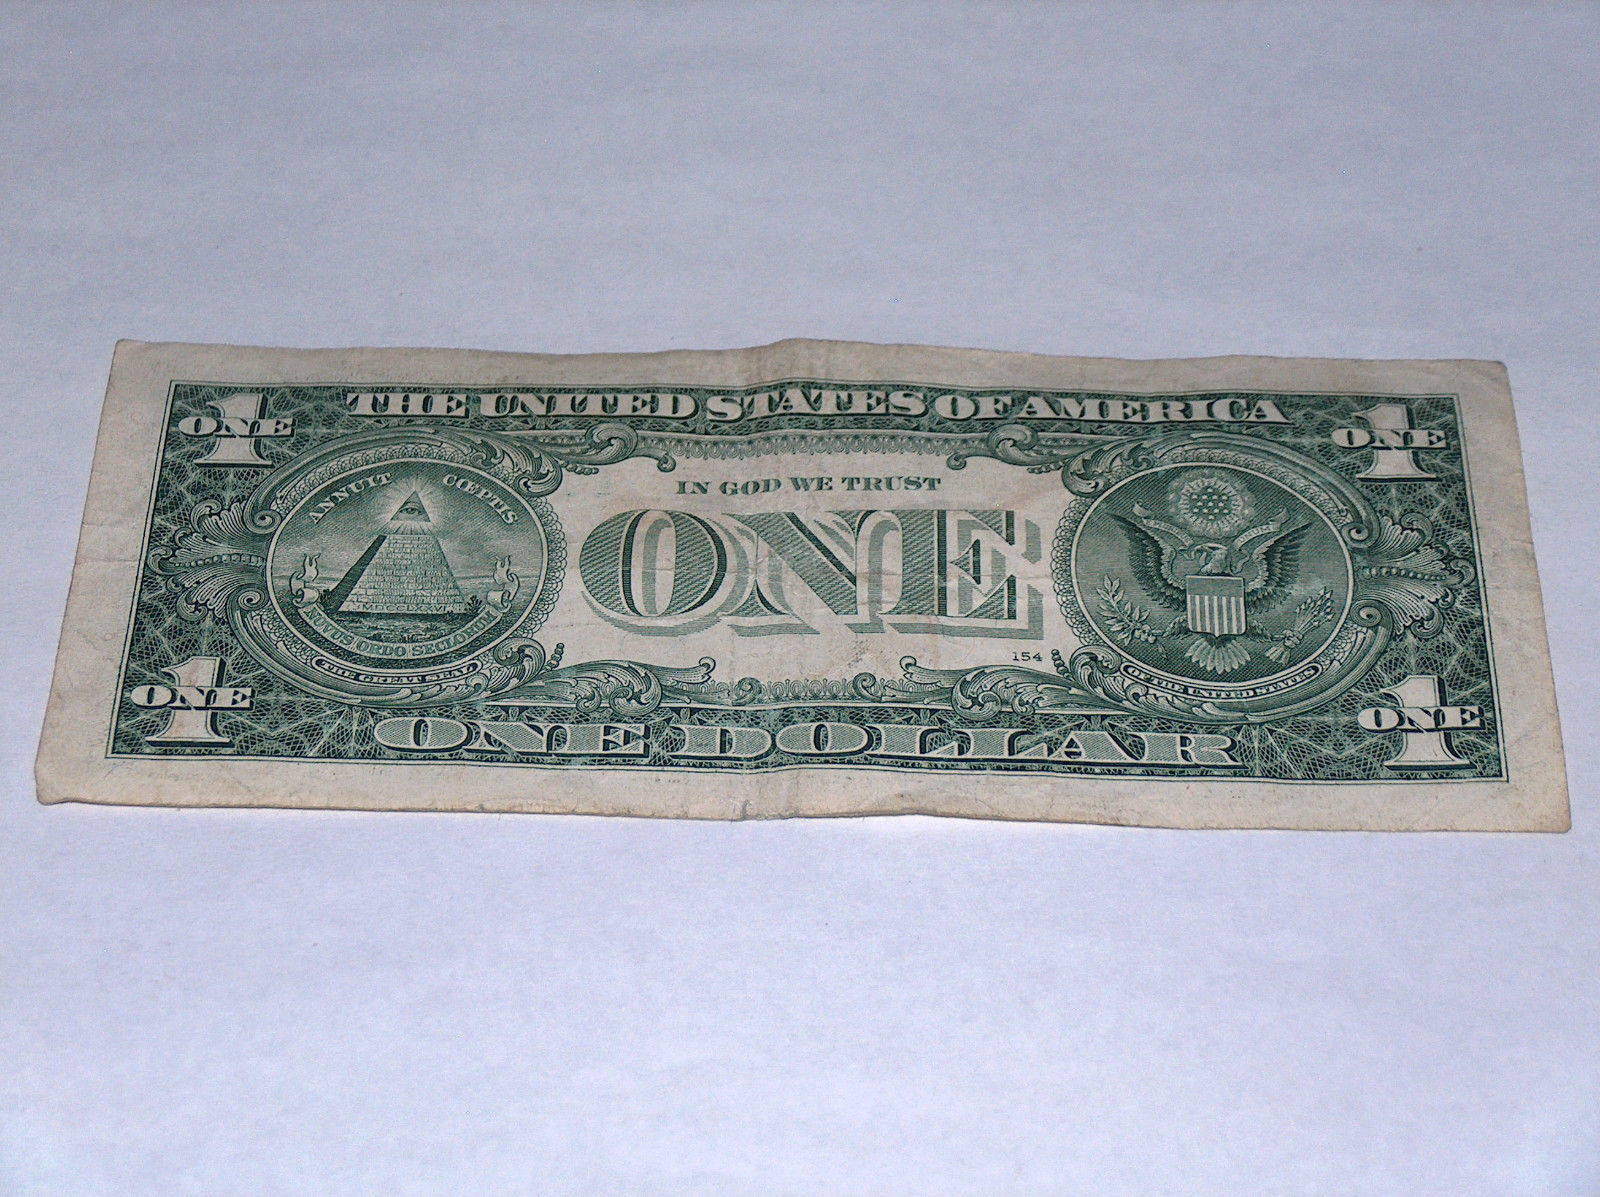 2009 $1 One Dollar Bill US Note Date April 4 1900 19000404 Fancy Serial Number #